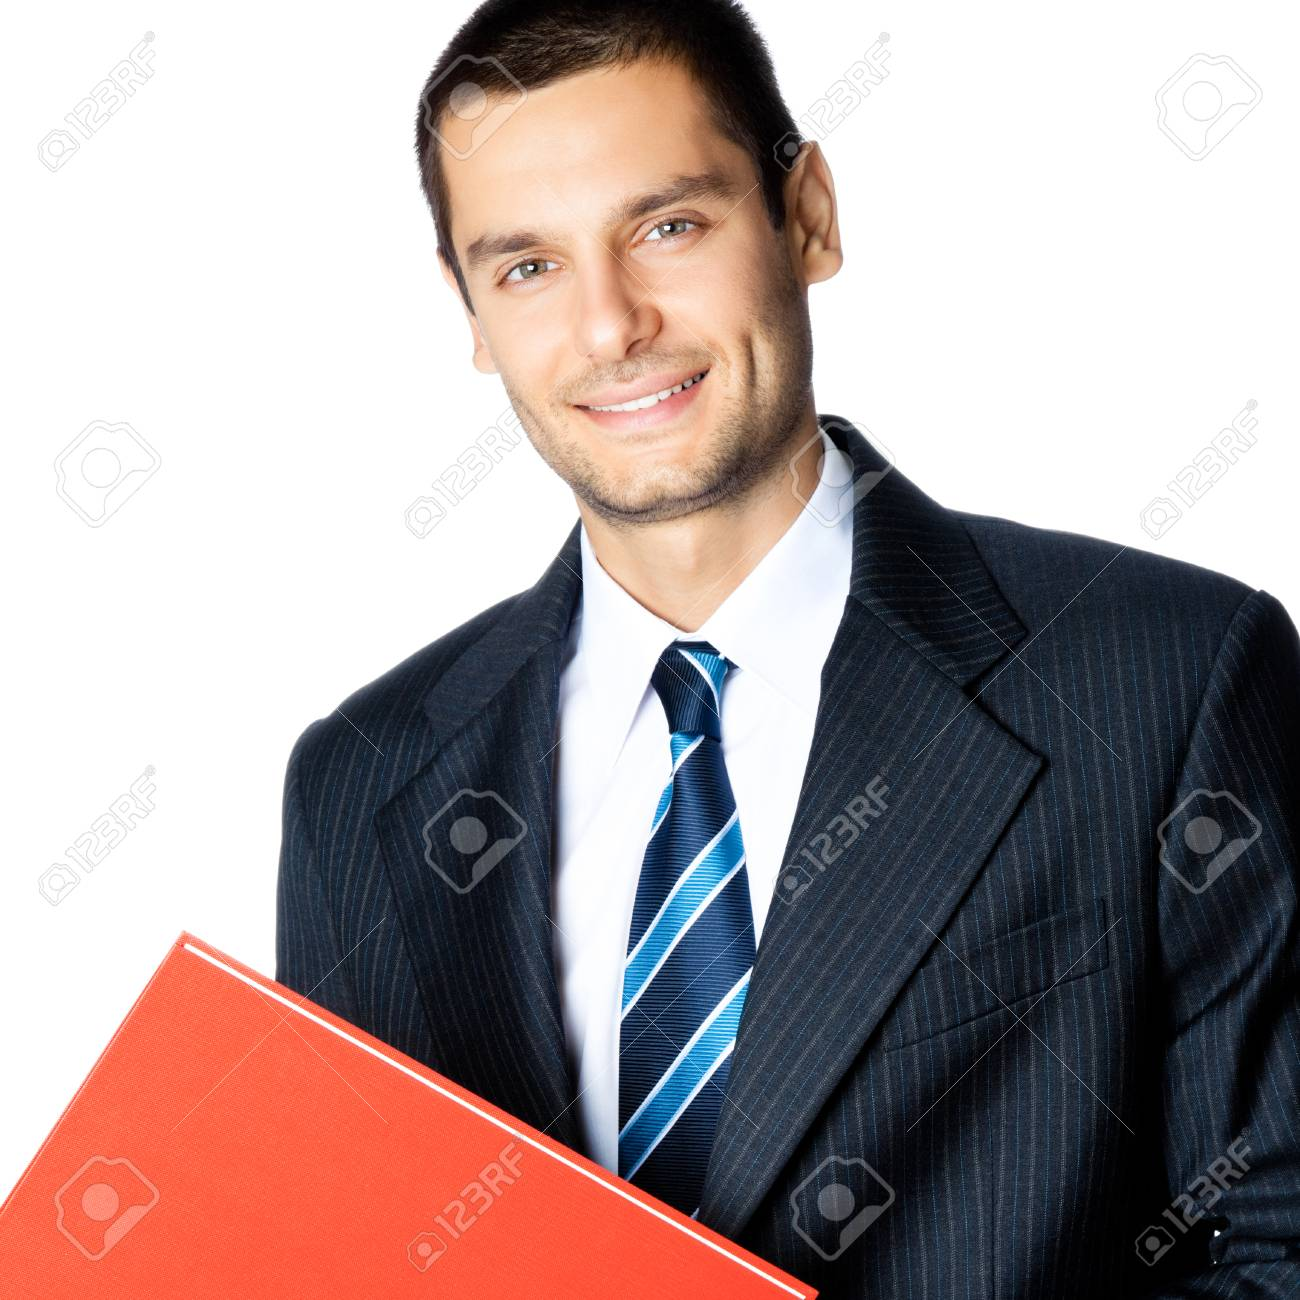 Portrait of happy smiling businessman with red folder, isolated on white background Stock Photo - 28356221